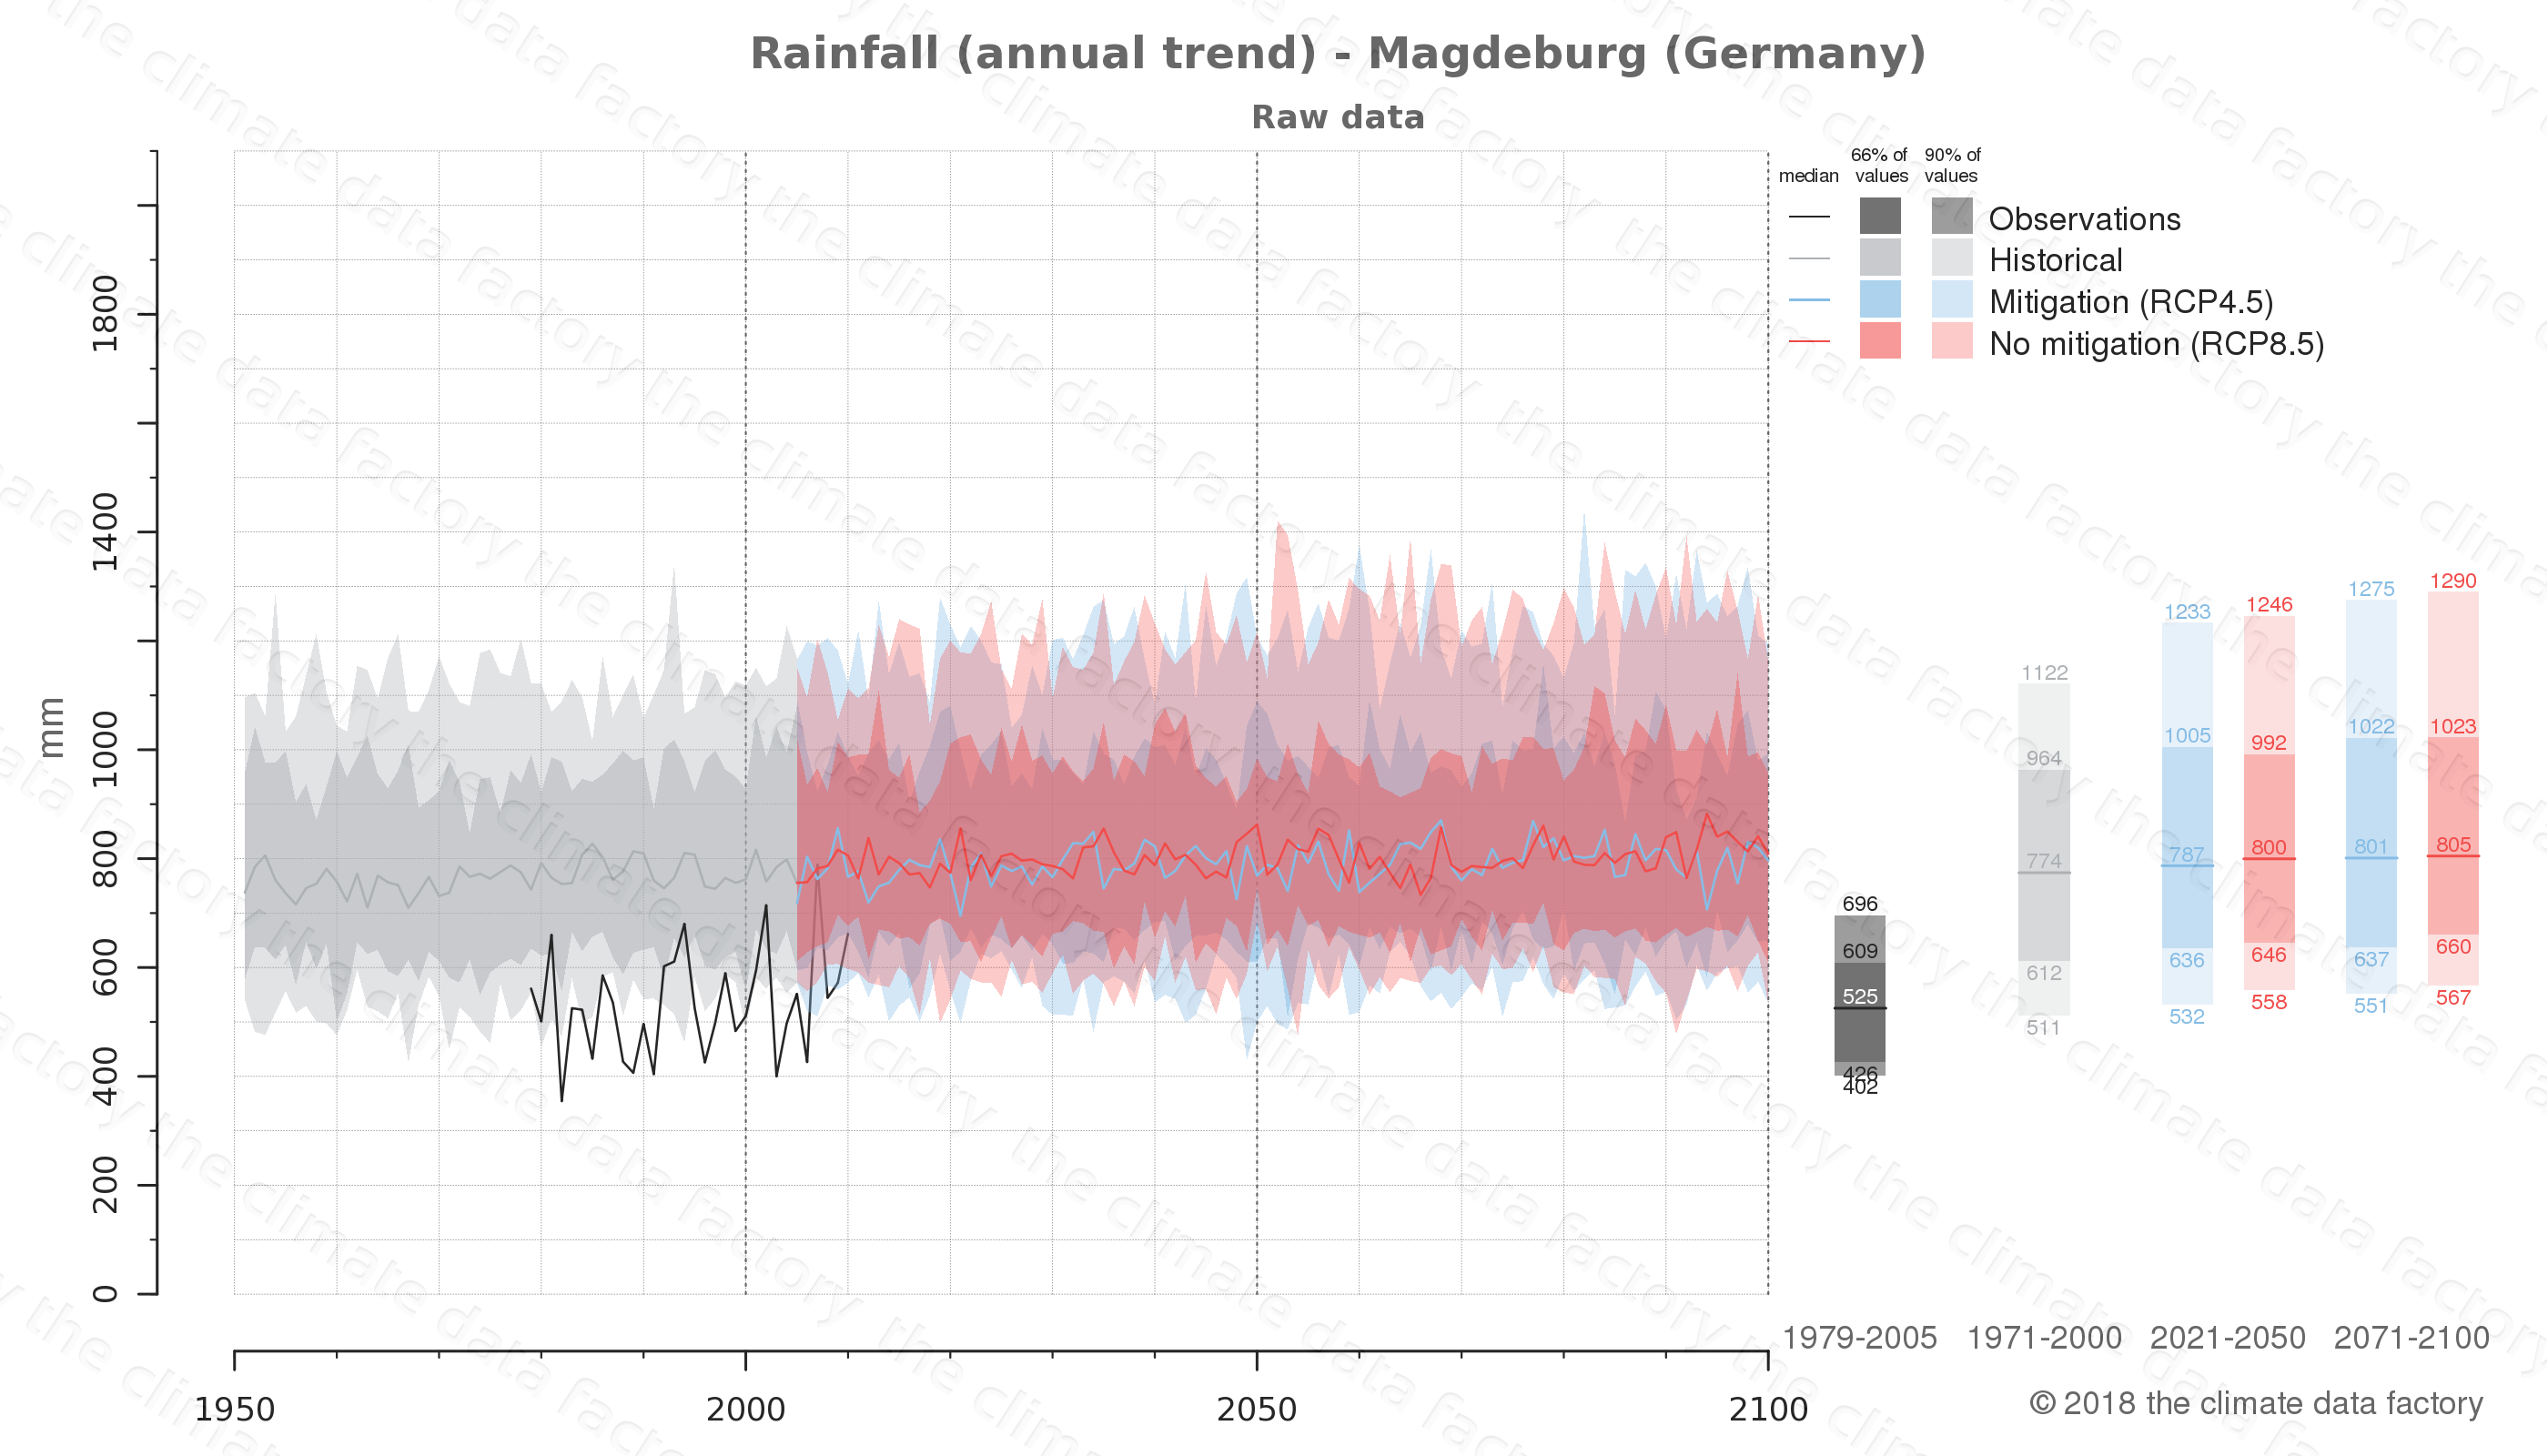 climate change data policy adaptation climate graph city data rainfall magdeburg germany